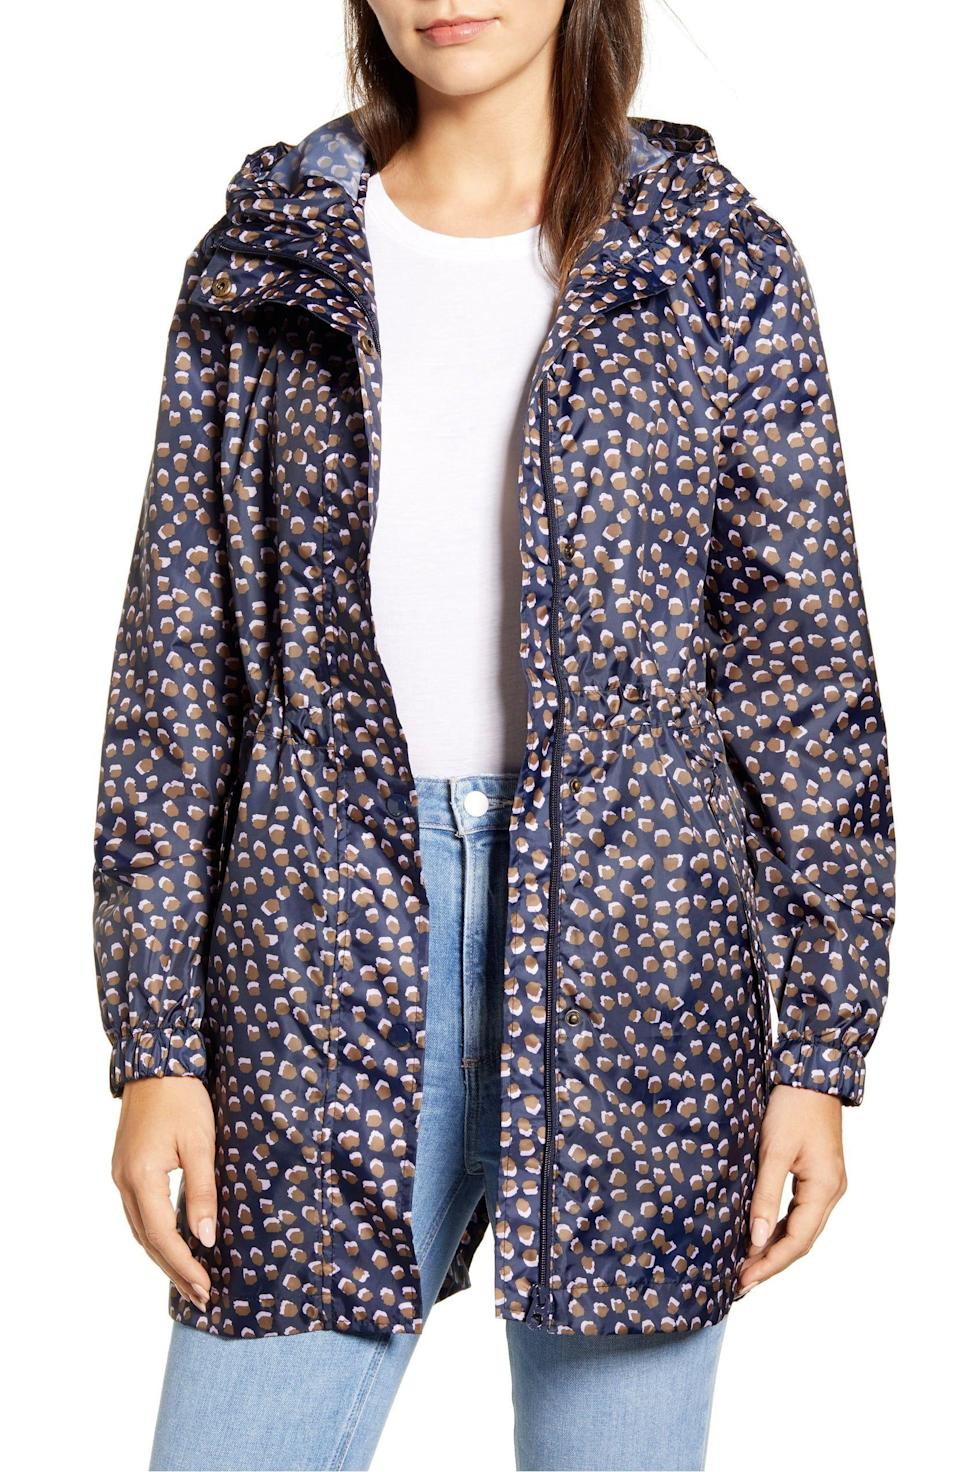 """<p><strong>JOULES</strong></p><p>nordstrom.com</p><p><strong>$47.96</strong></p><p><a href=""""https://go.redirectingat.com?id=74968X1596630&url=https%3A%2F%2Fshop.nordstrom.com%2Fs%2Fjoules-packable-waterproof-rain-jacket%2F5634118&sref=https%3A%2F%2Fwww.cosmopolitan.com%2Fstyle-beauty%2Ffashion%2Fg33523619%2Fbest-raincoats%2F"""" rel=""""nofollow noopener"""" target=""""_blank"""" data-ylk=""""slk:Shop Now"""" class=""""link rapid-noclick-resp"""">Shop Now</a></p><p>Some styles can be a bit shapeless, but one with a drawstring waist will keep it snug against you. This printed Joules style has more than 50 reviews and an almost perfect 5-star rating. </p>"""